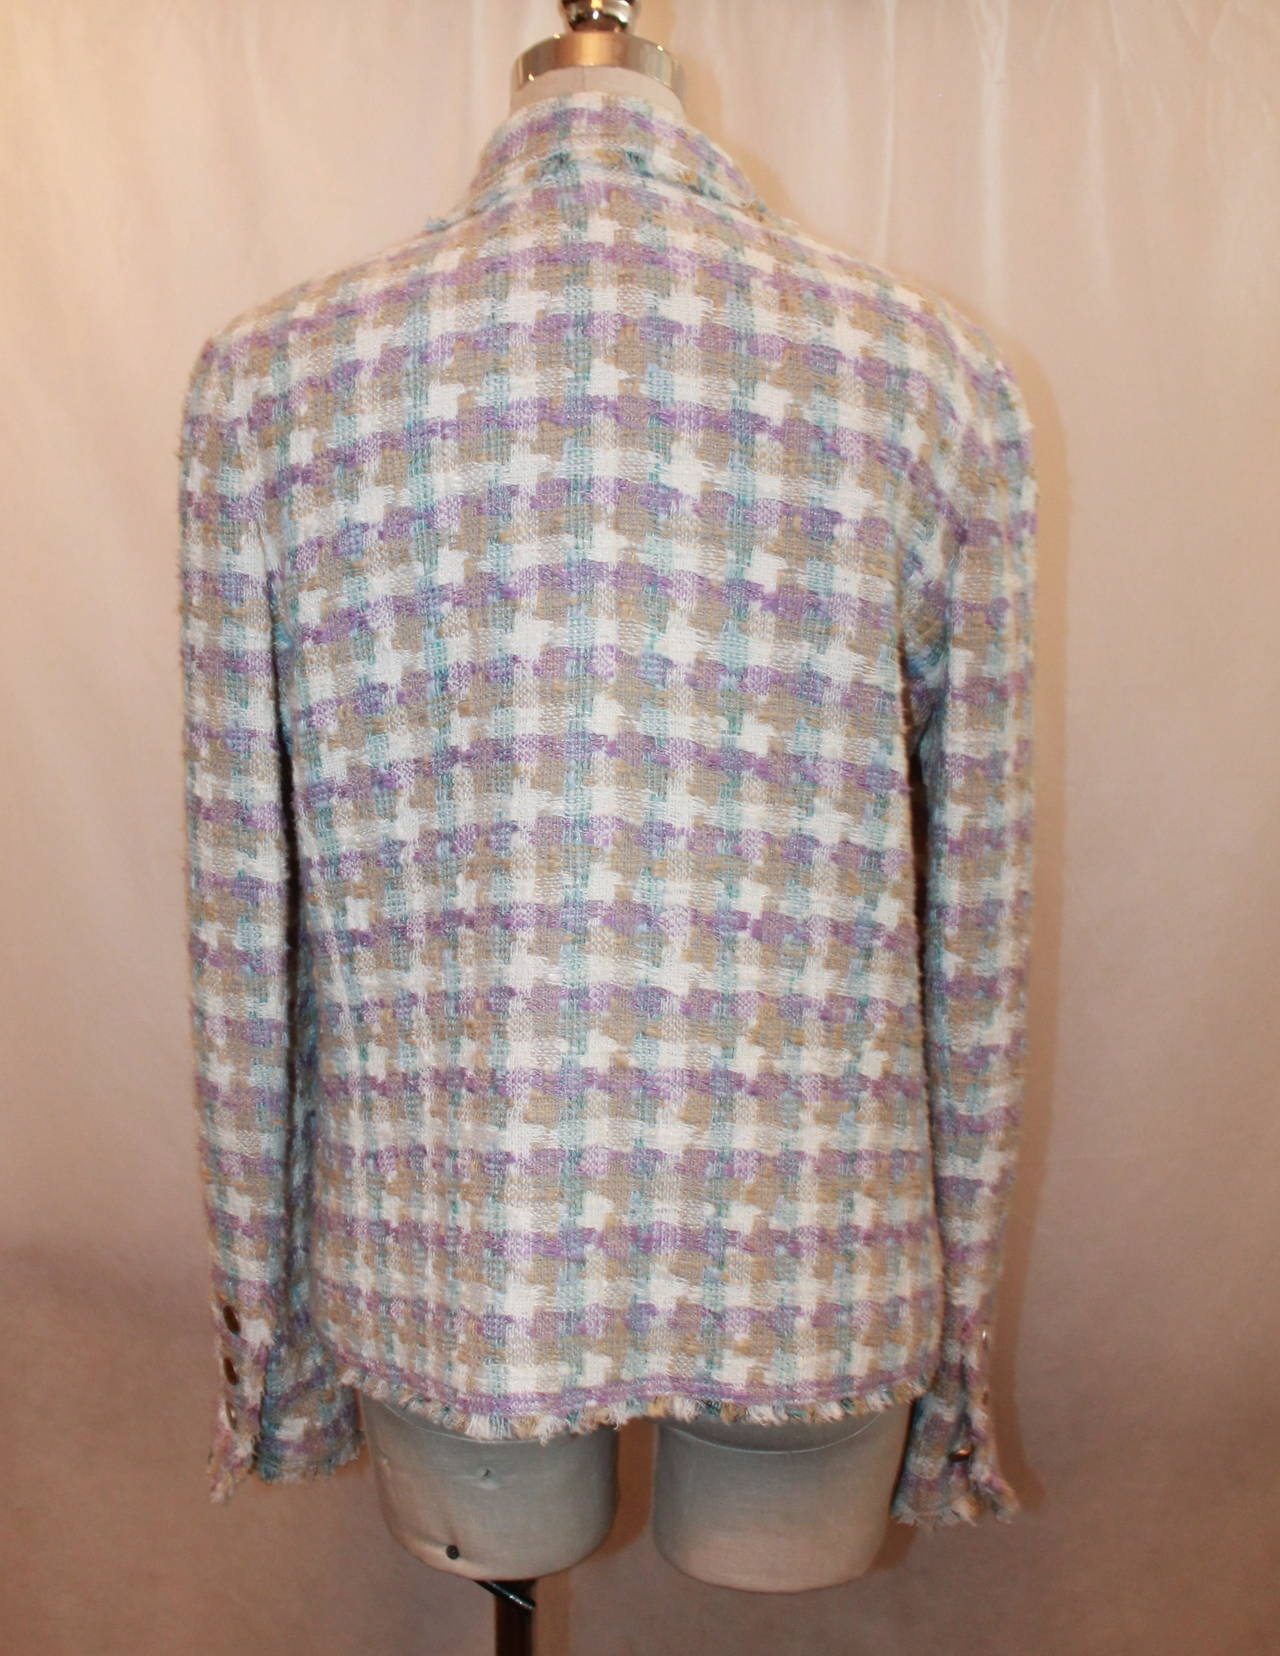 2005 Chanel Multi Color Pastel Tweed Jacket with Mademoiselle Buttons For Sale 1